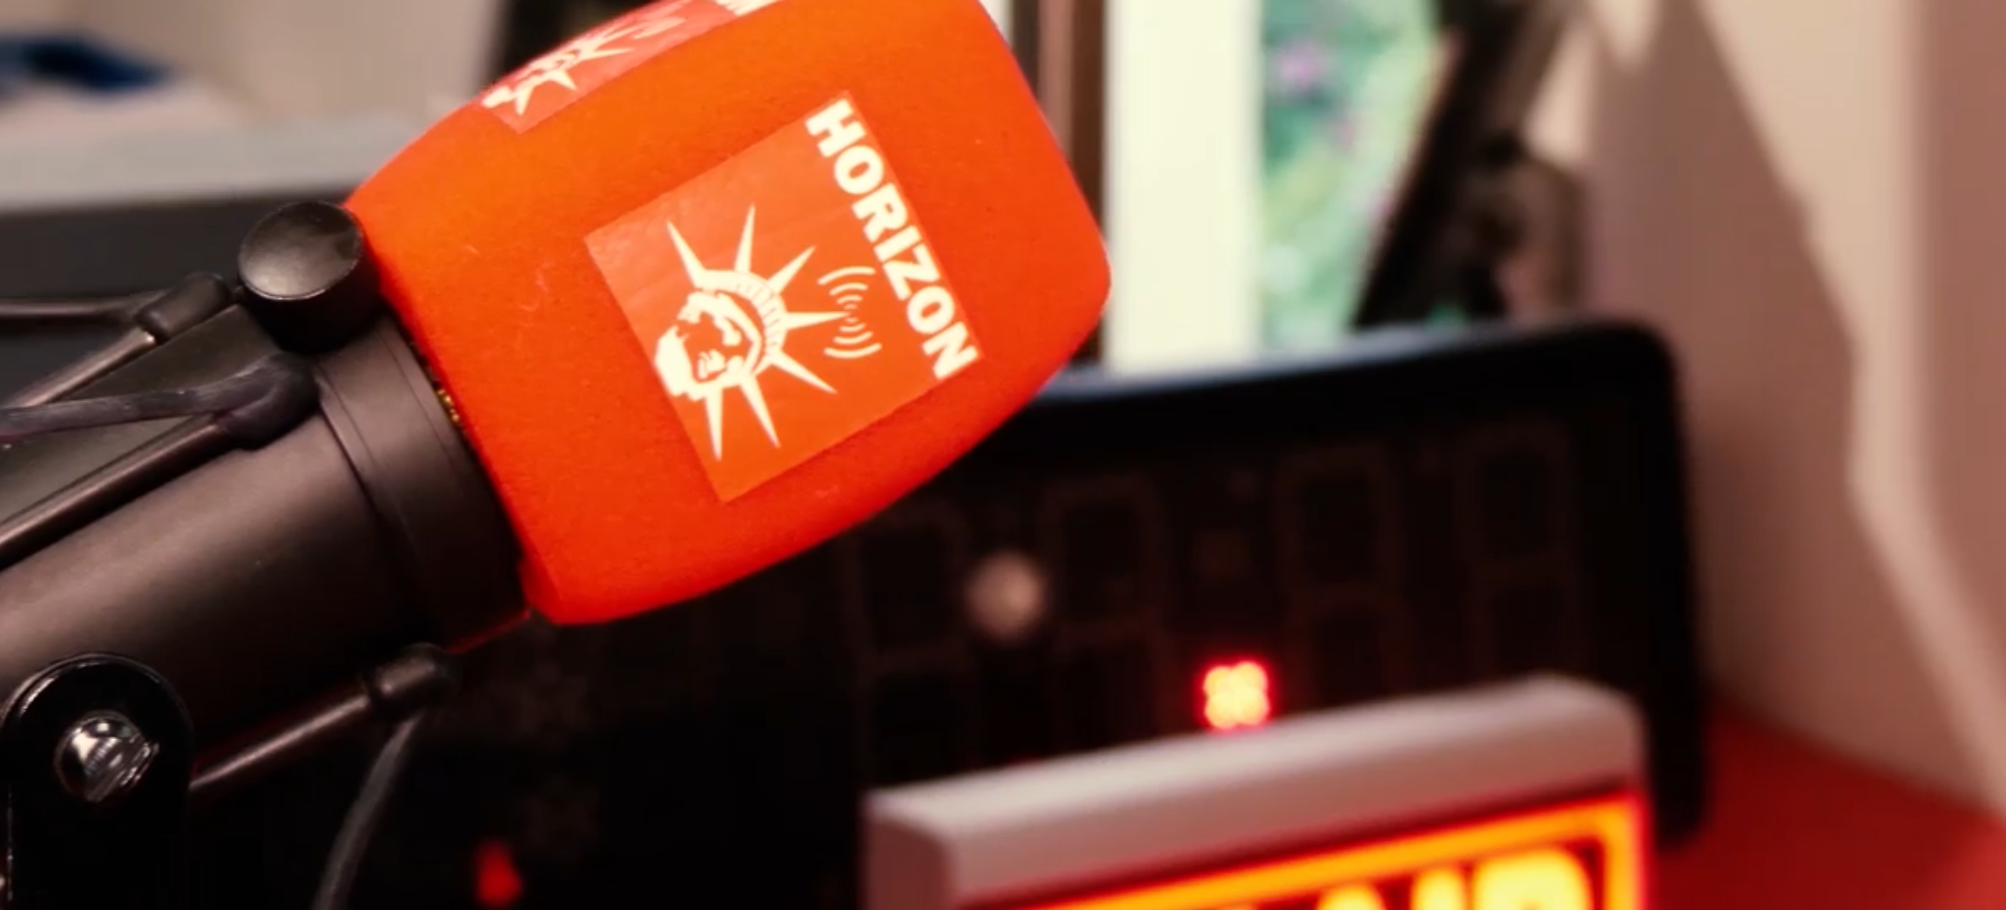 Horizon, la radio associative la plus écoutée en Normandie